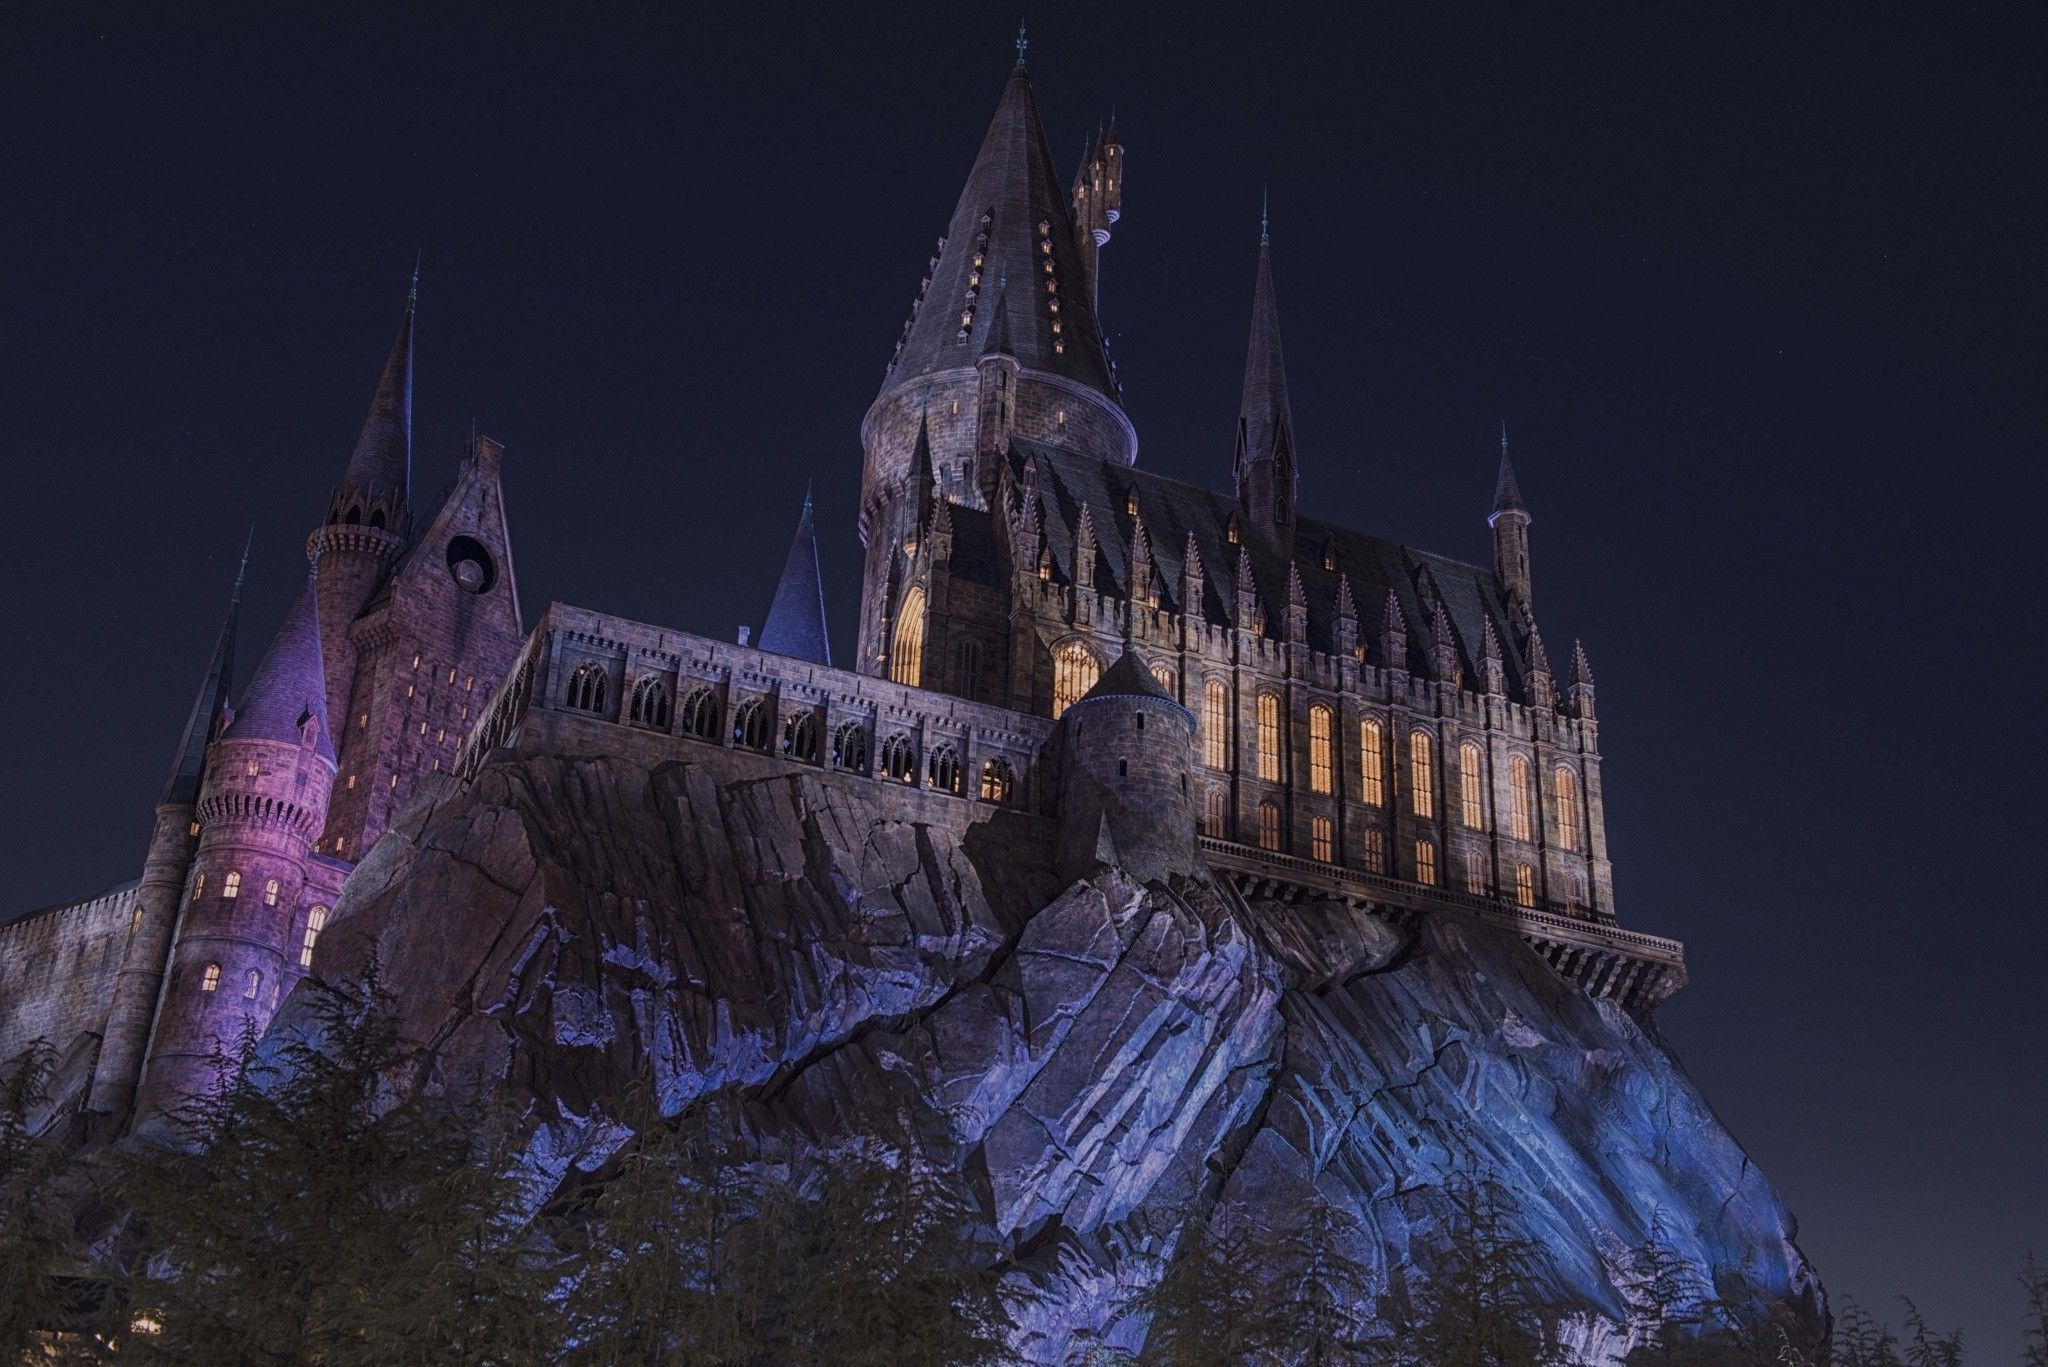 Must see Wallpaper Harry Potter Imac - 750c2c395be23a0d62706373f12bbd02  Pic_561785.jpg